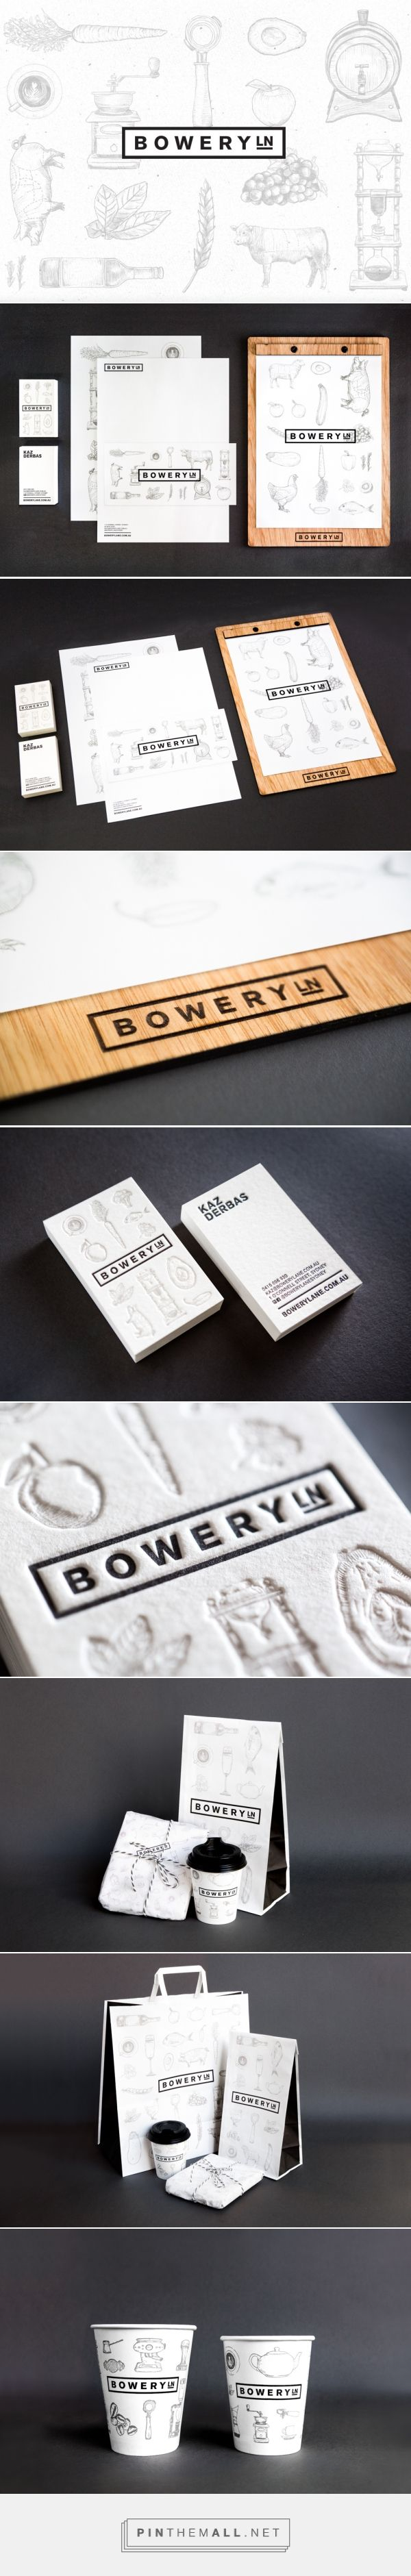 12 best business card printing images on pinterest